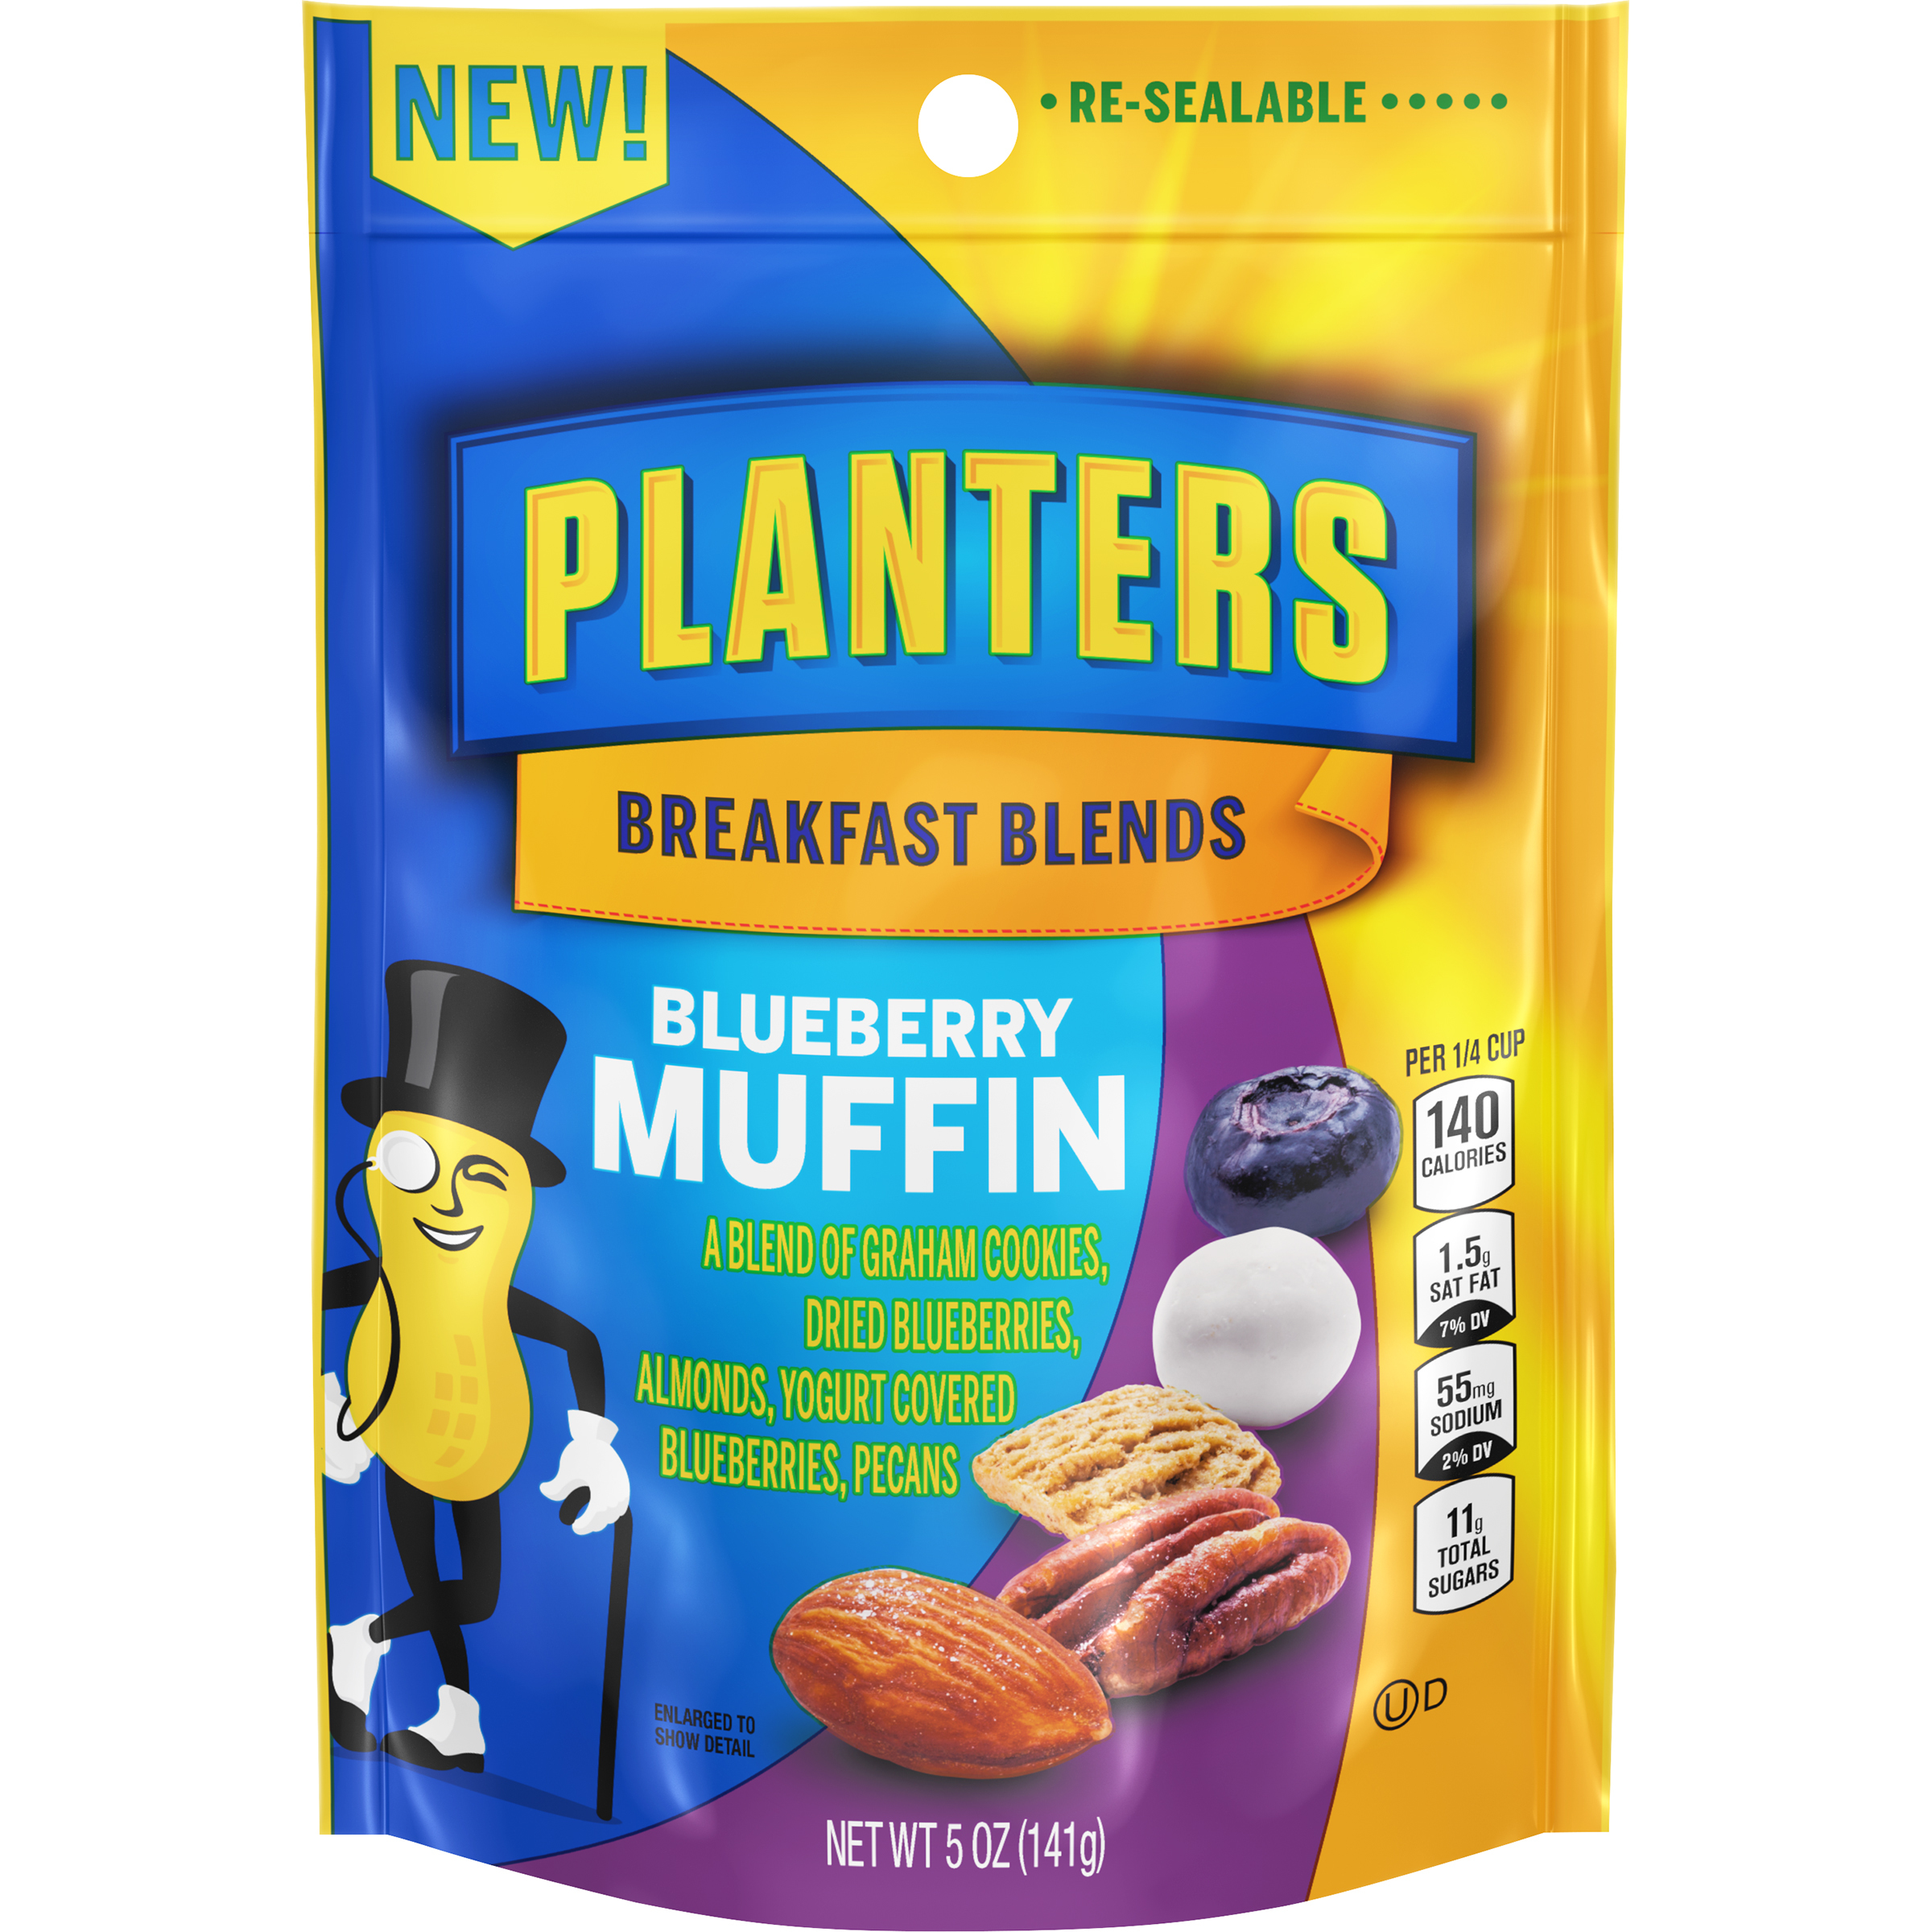 PLANTERS® Breakfast Blends Blueberry Muffin Trail Mix 5 oz bag